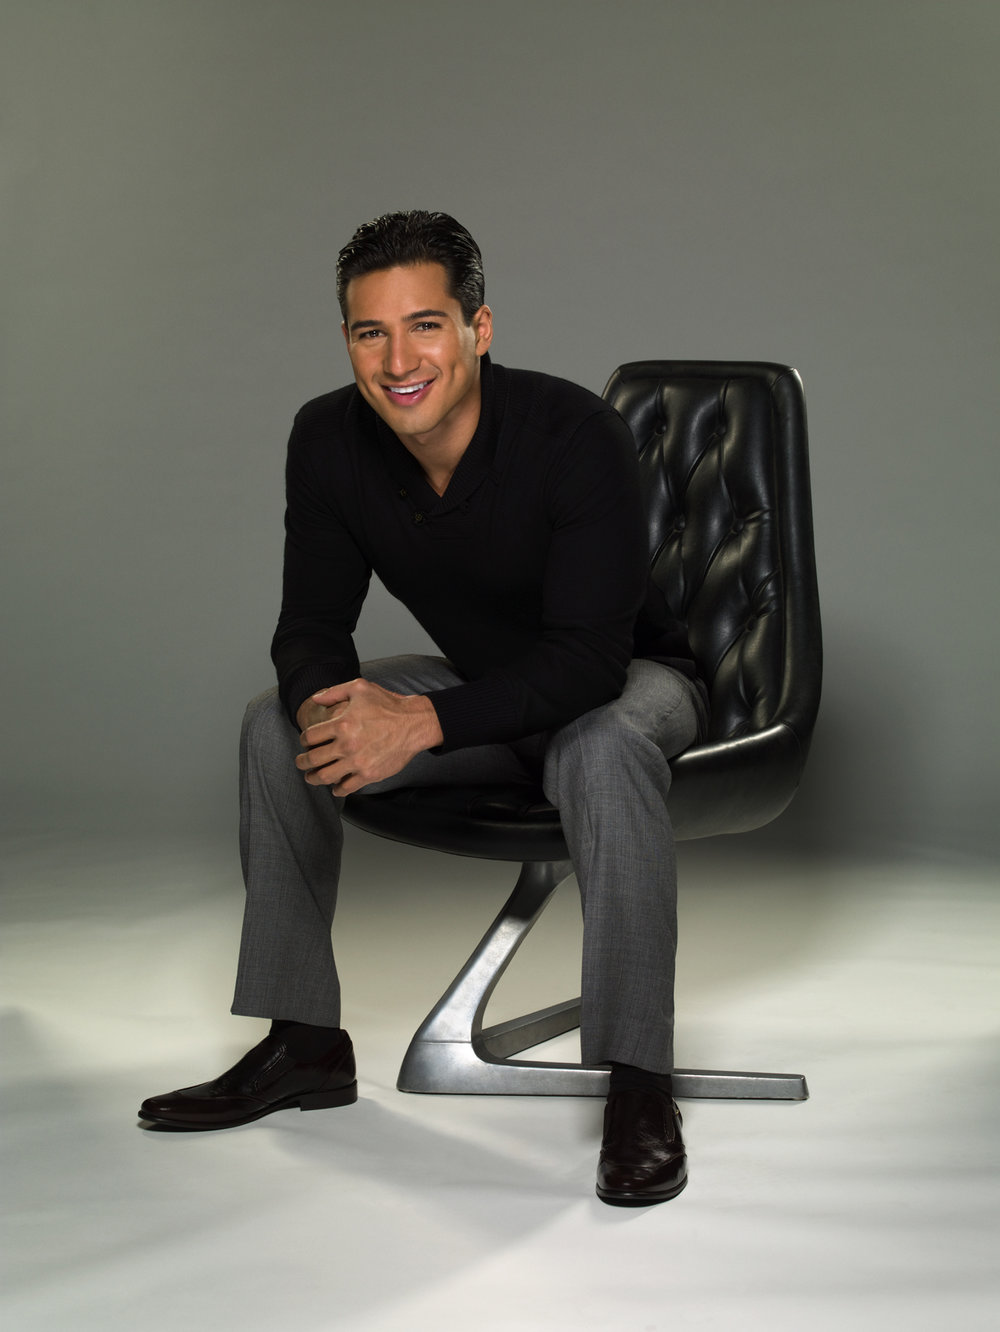 mario lopez hispanic outlook 12 magazine